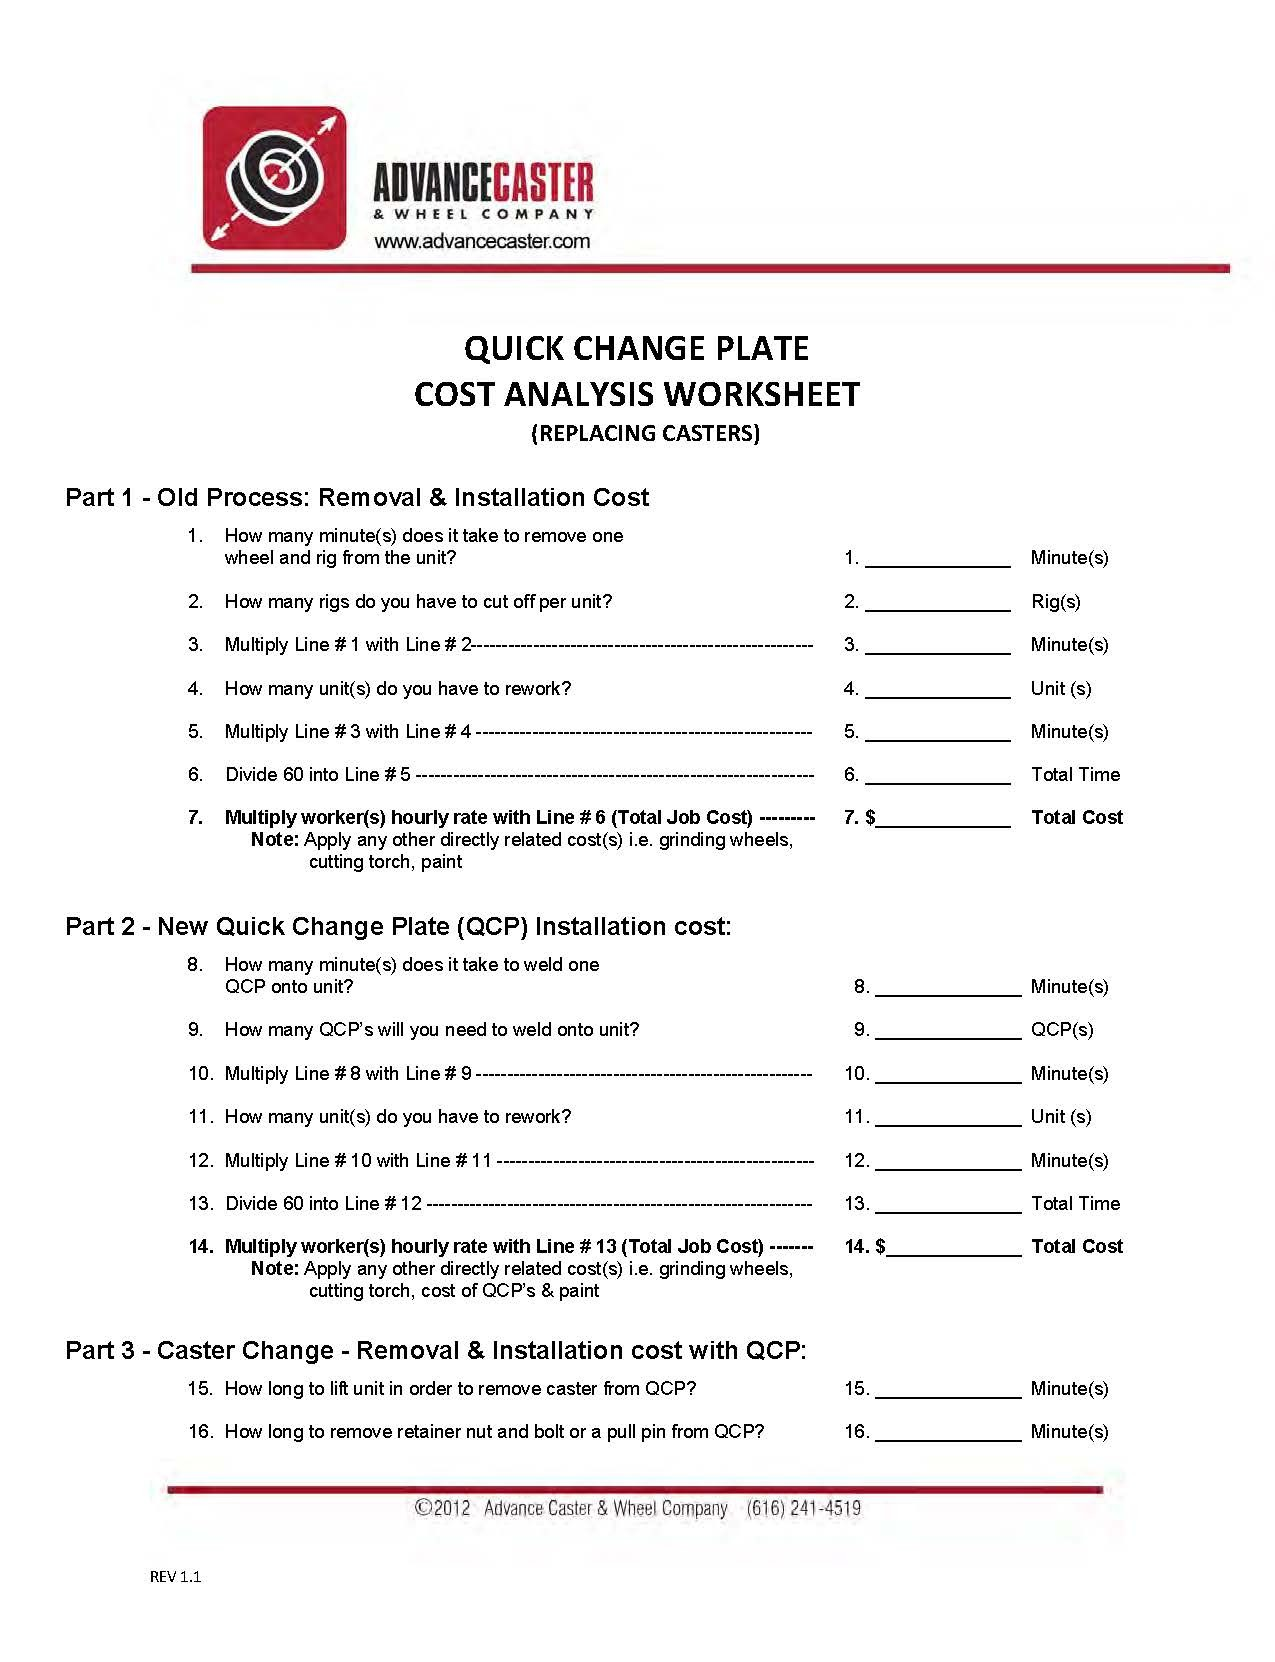 Cost Analysis Worksheet Advance Caster – Cost Analysis Worksheet